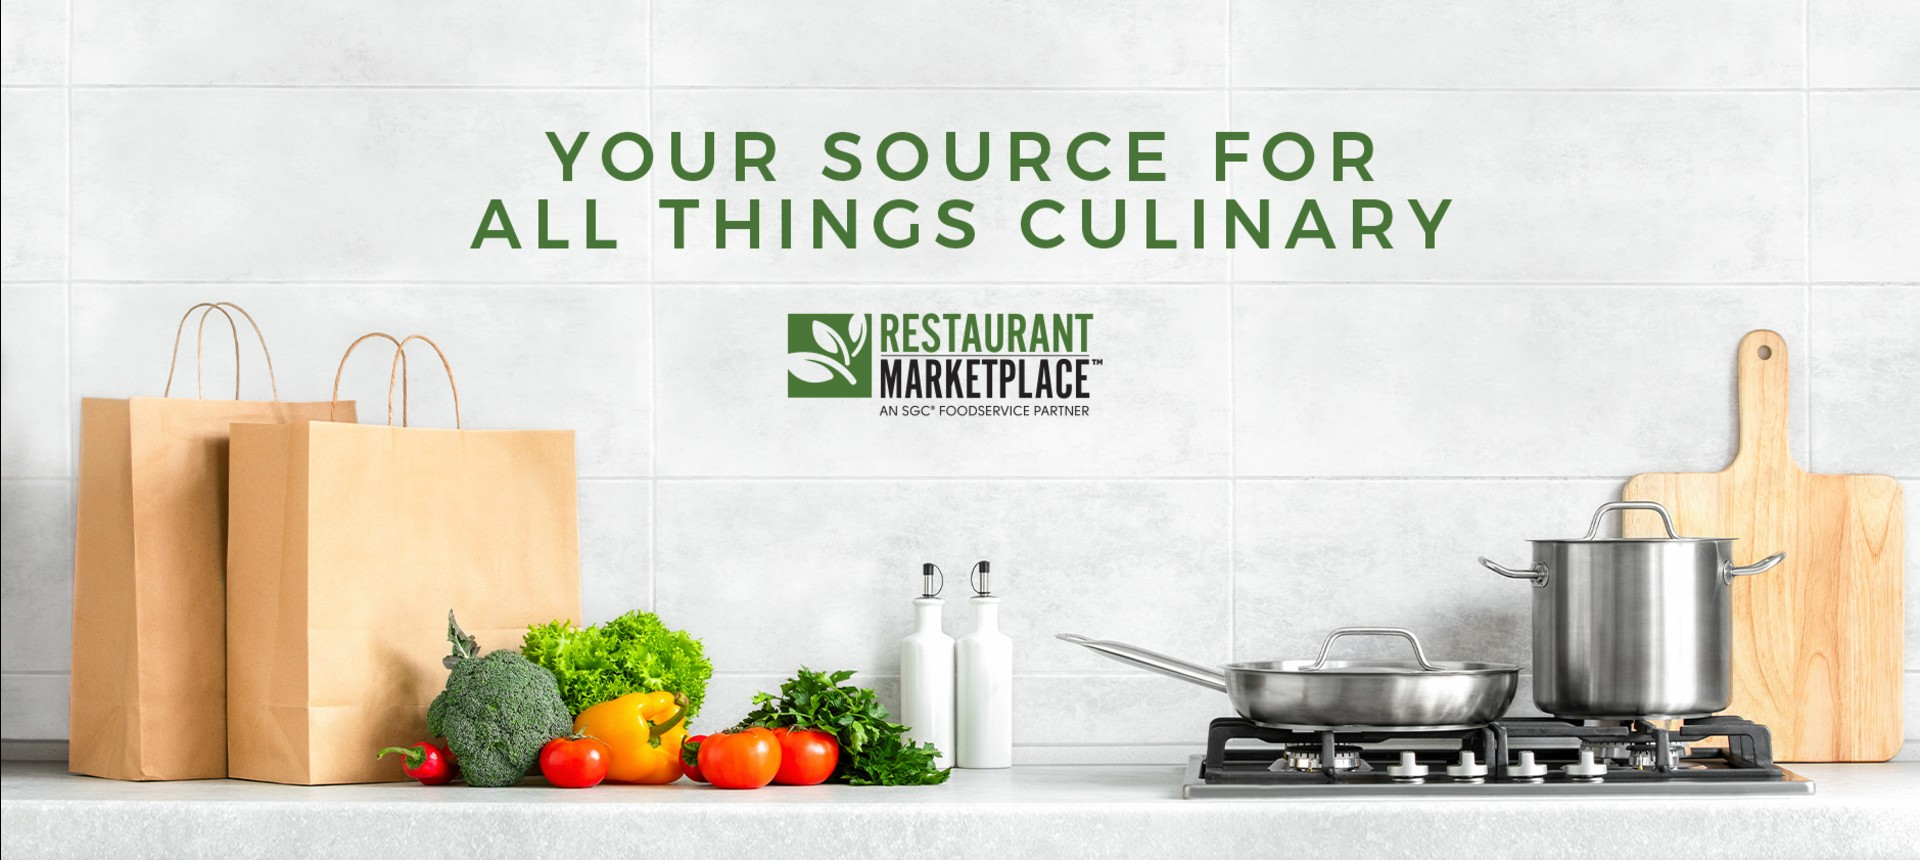 Restaurant Marketplace header image